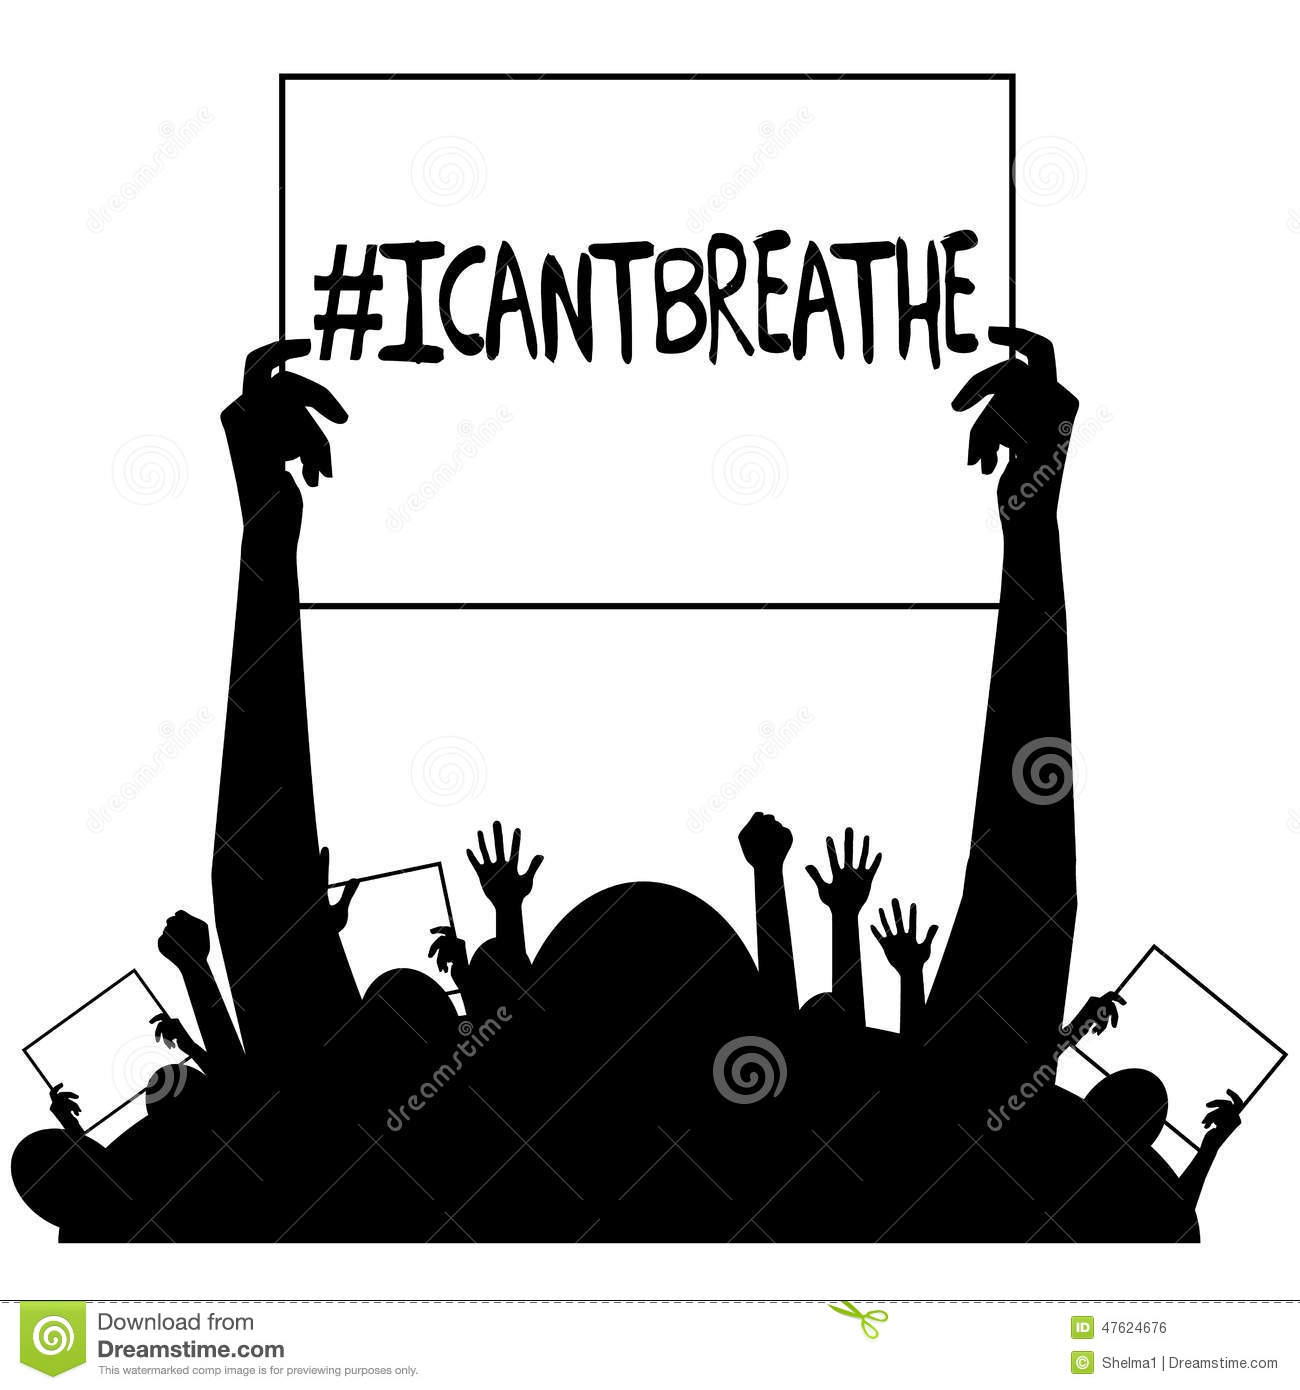 I Cant Breathe Protest Signs Silhouette Stock Vector